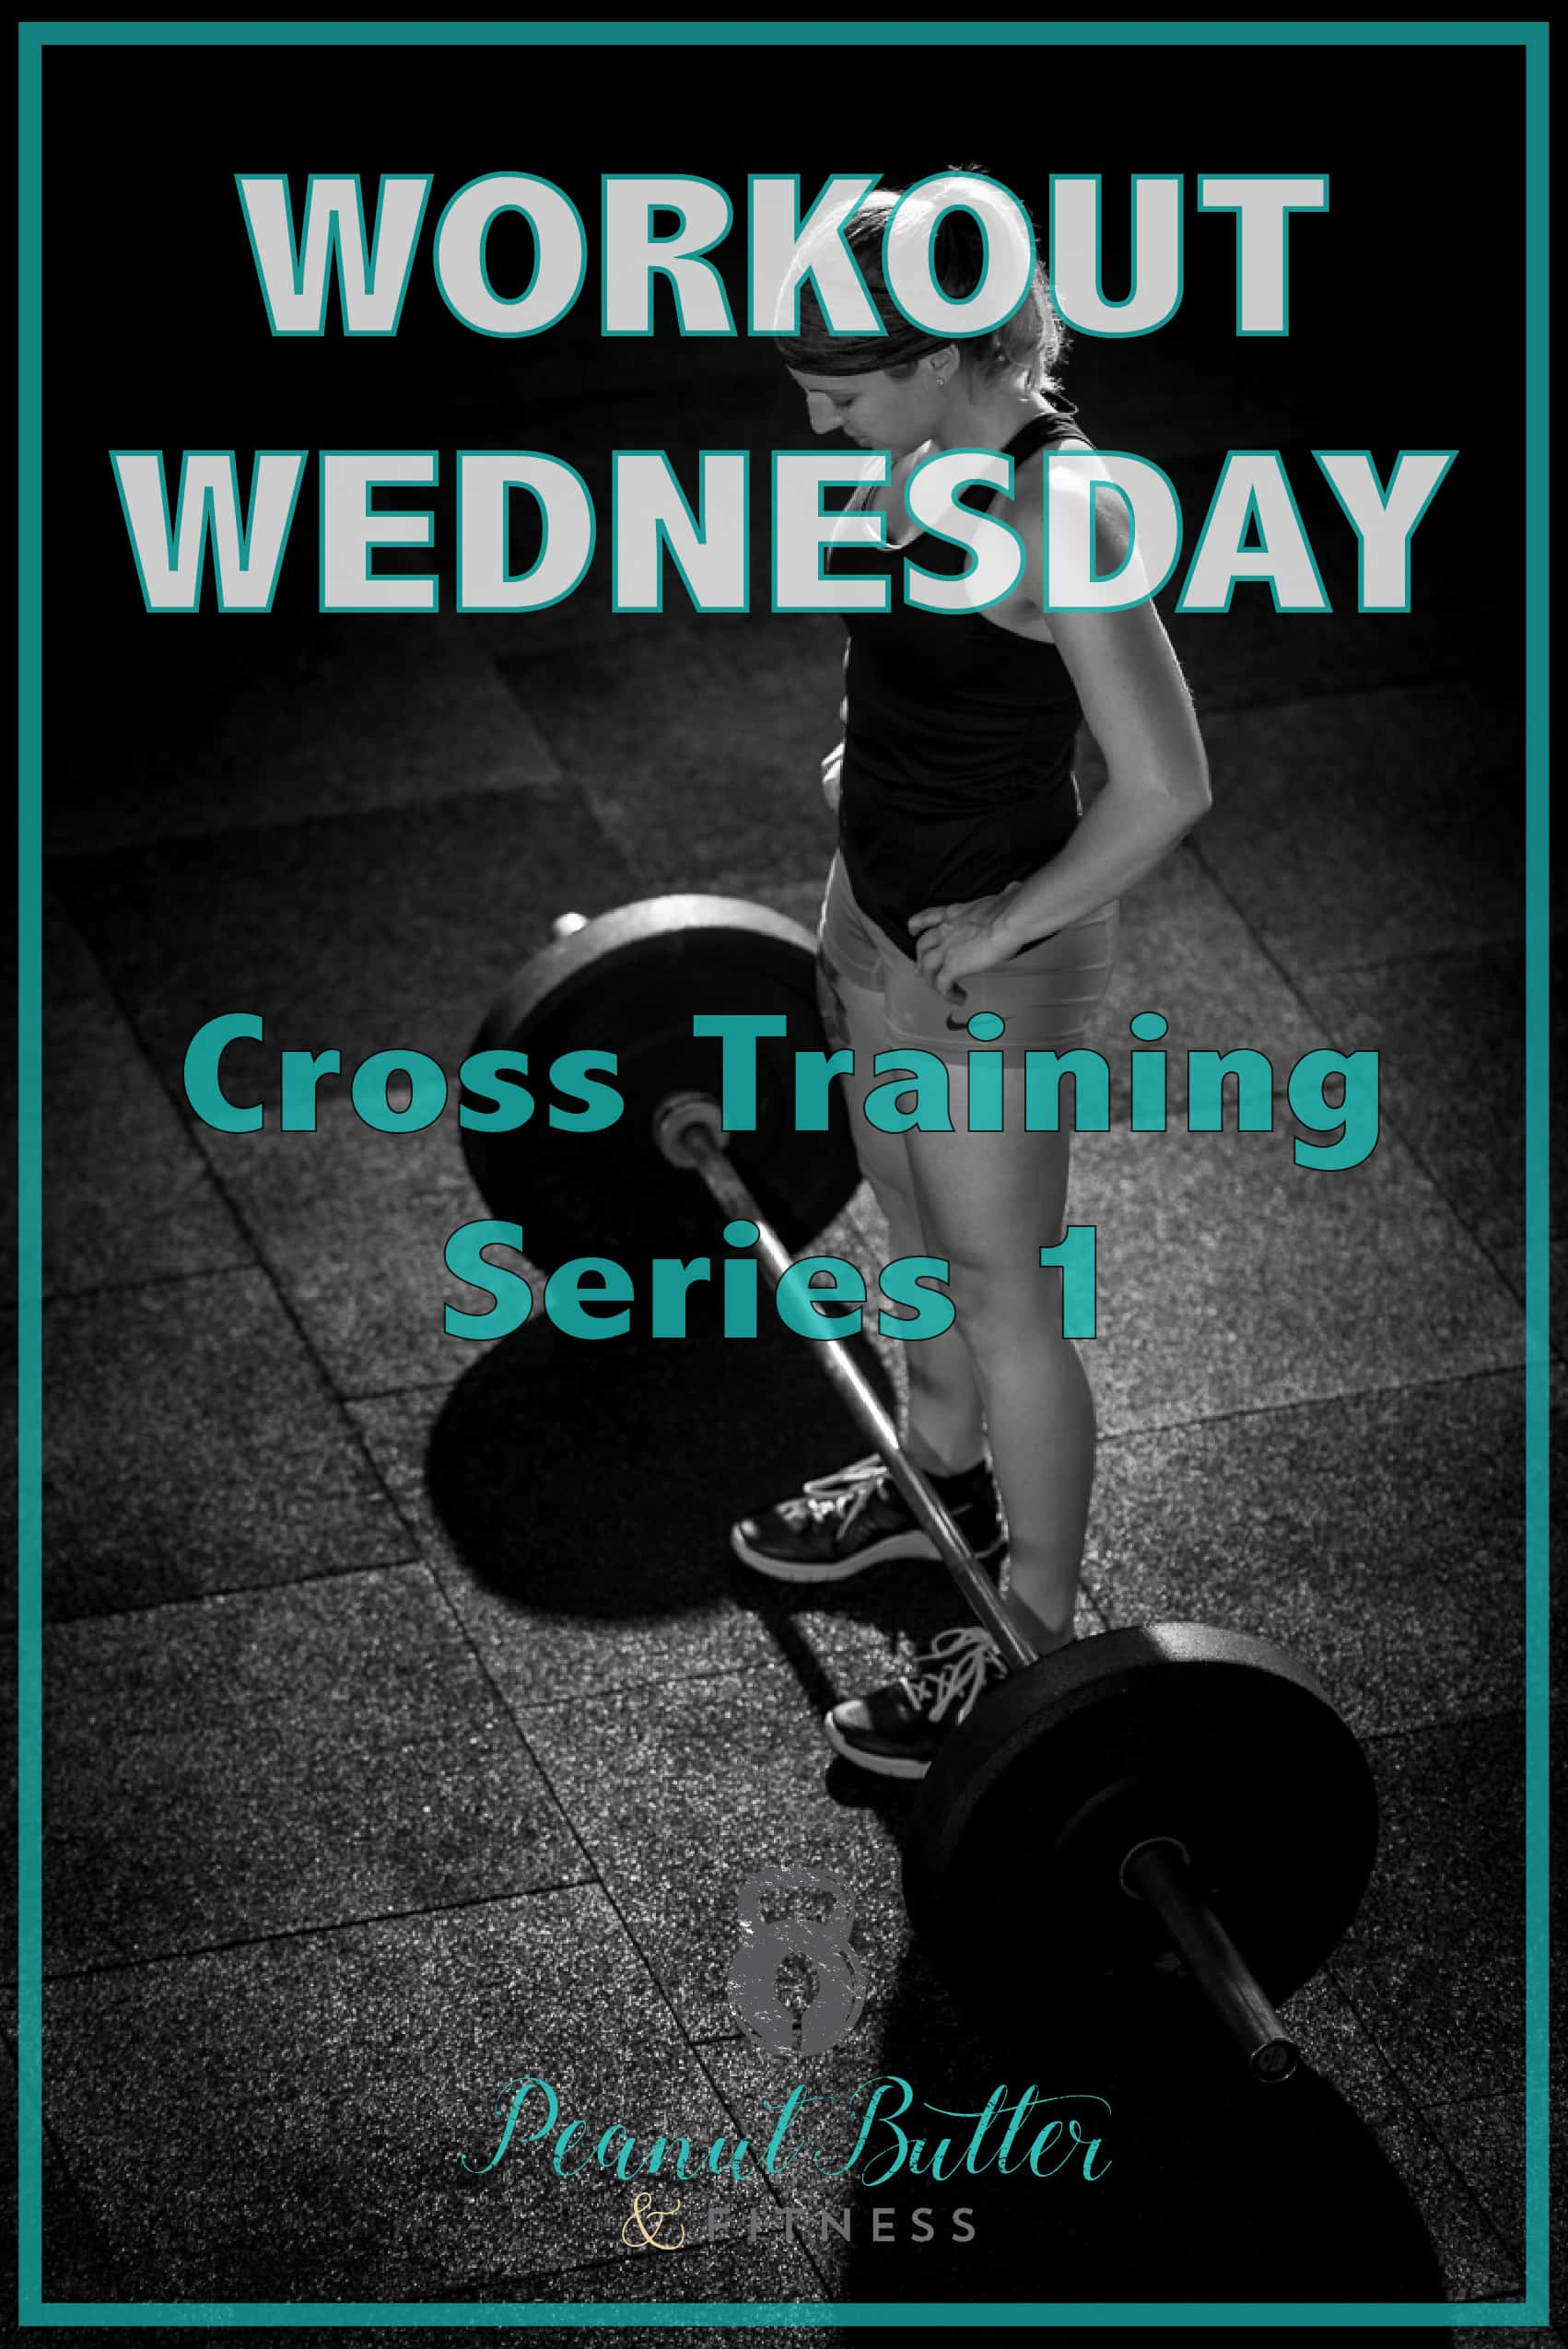 Workout wednesday - cross training series 1-01